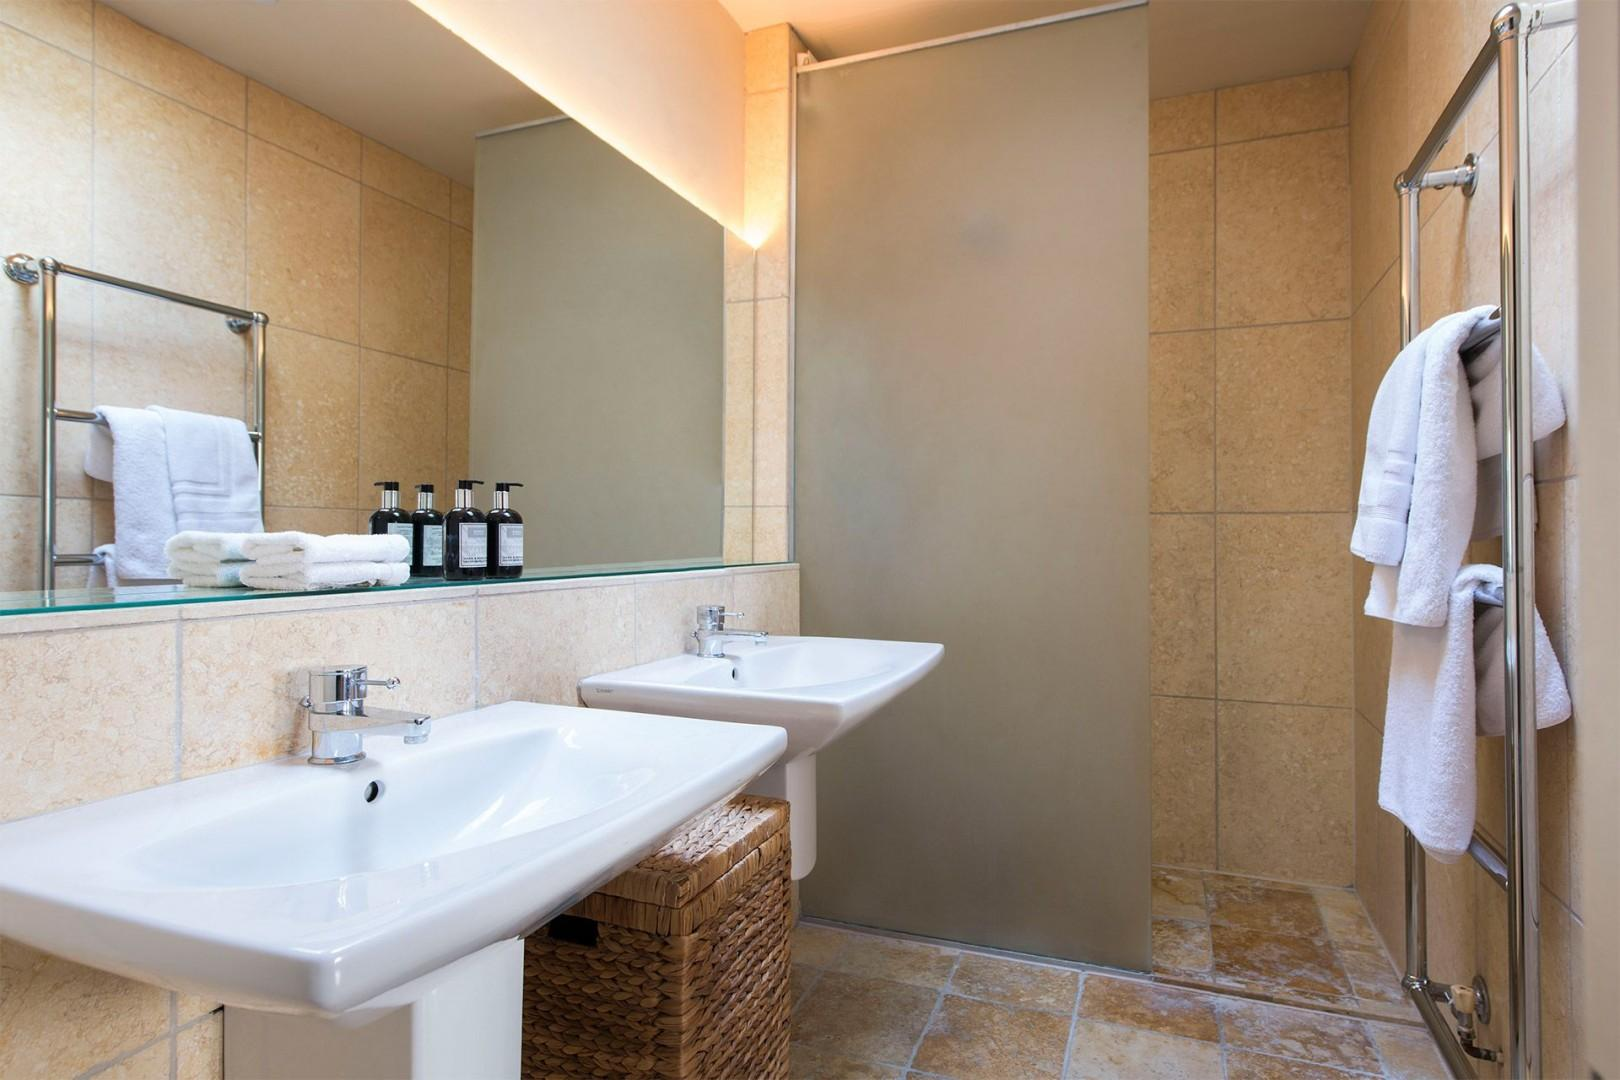 Spacious ensuite bathroom with shower, double sinks and toilet